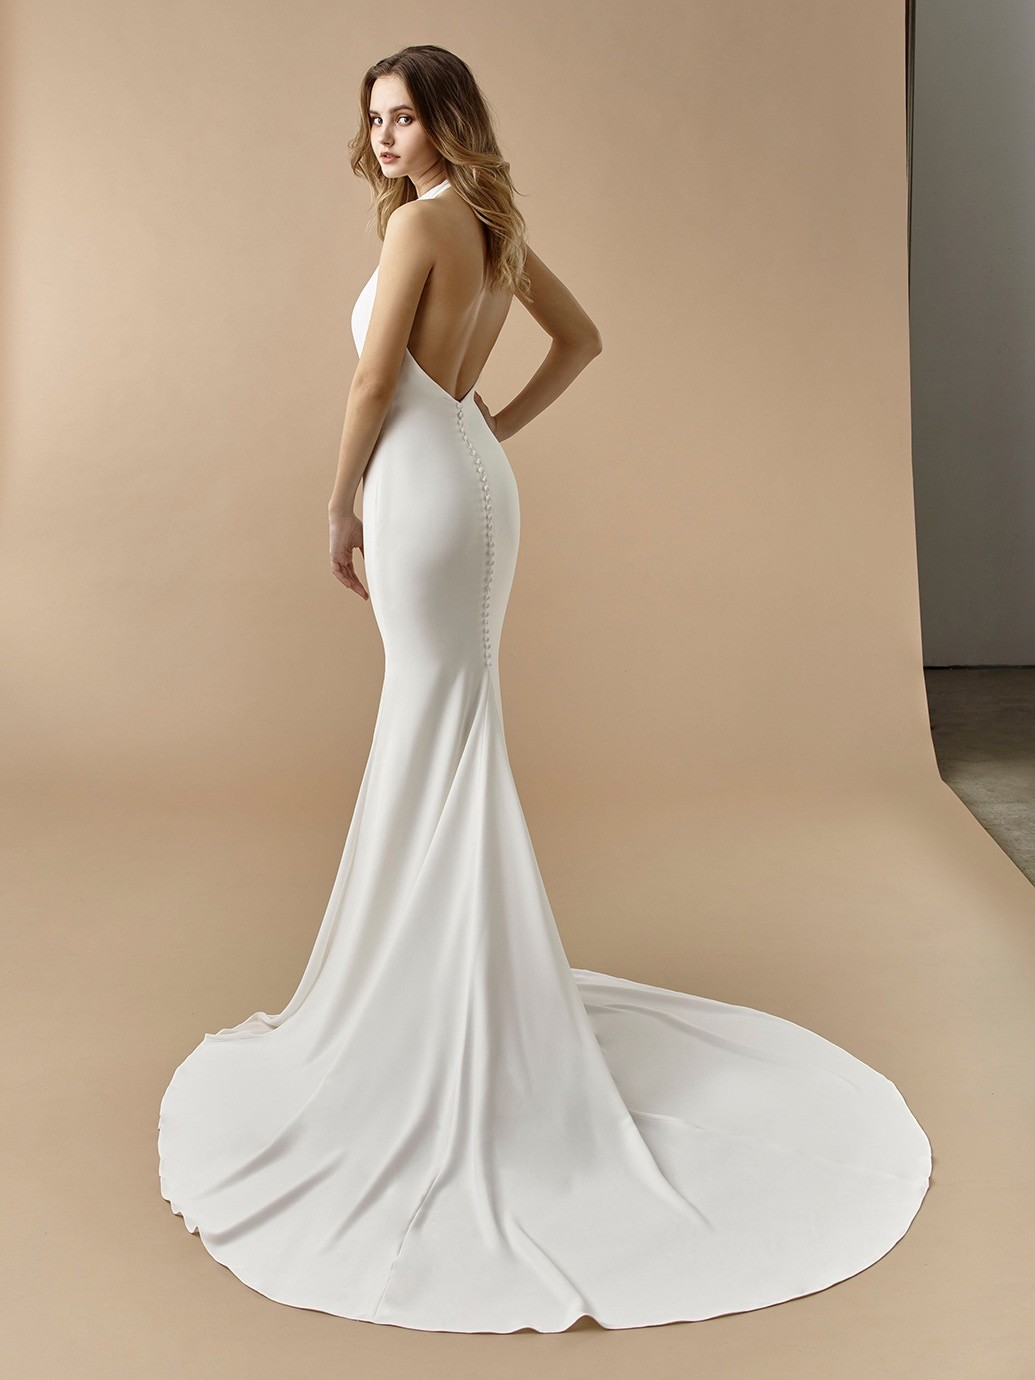 Brautkleid Modell BT20-12 aus der Beautiful Bridal Kollektion 2020